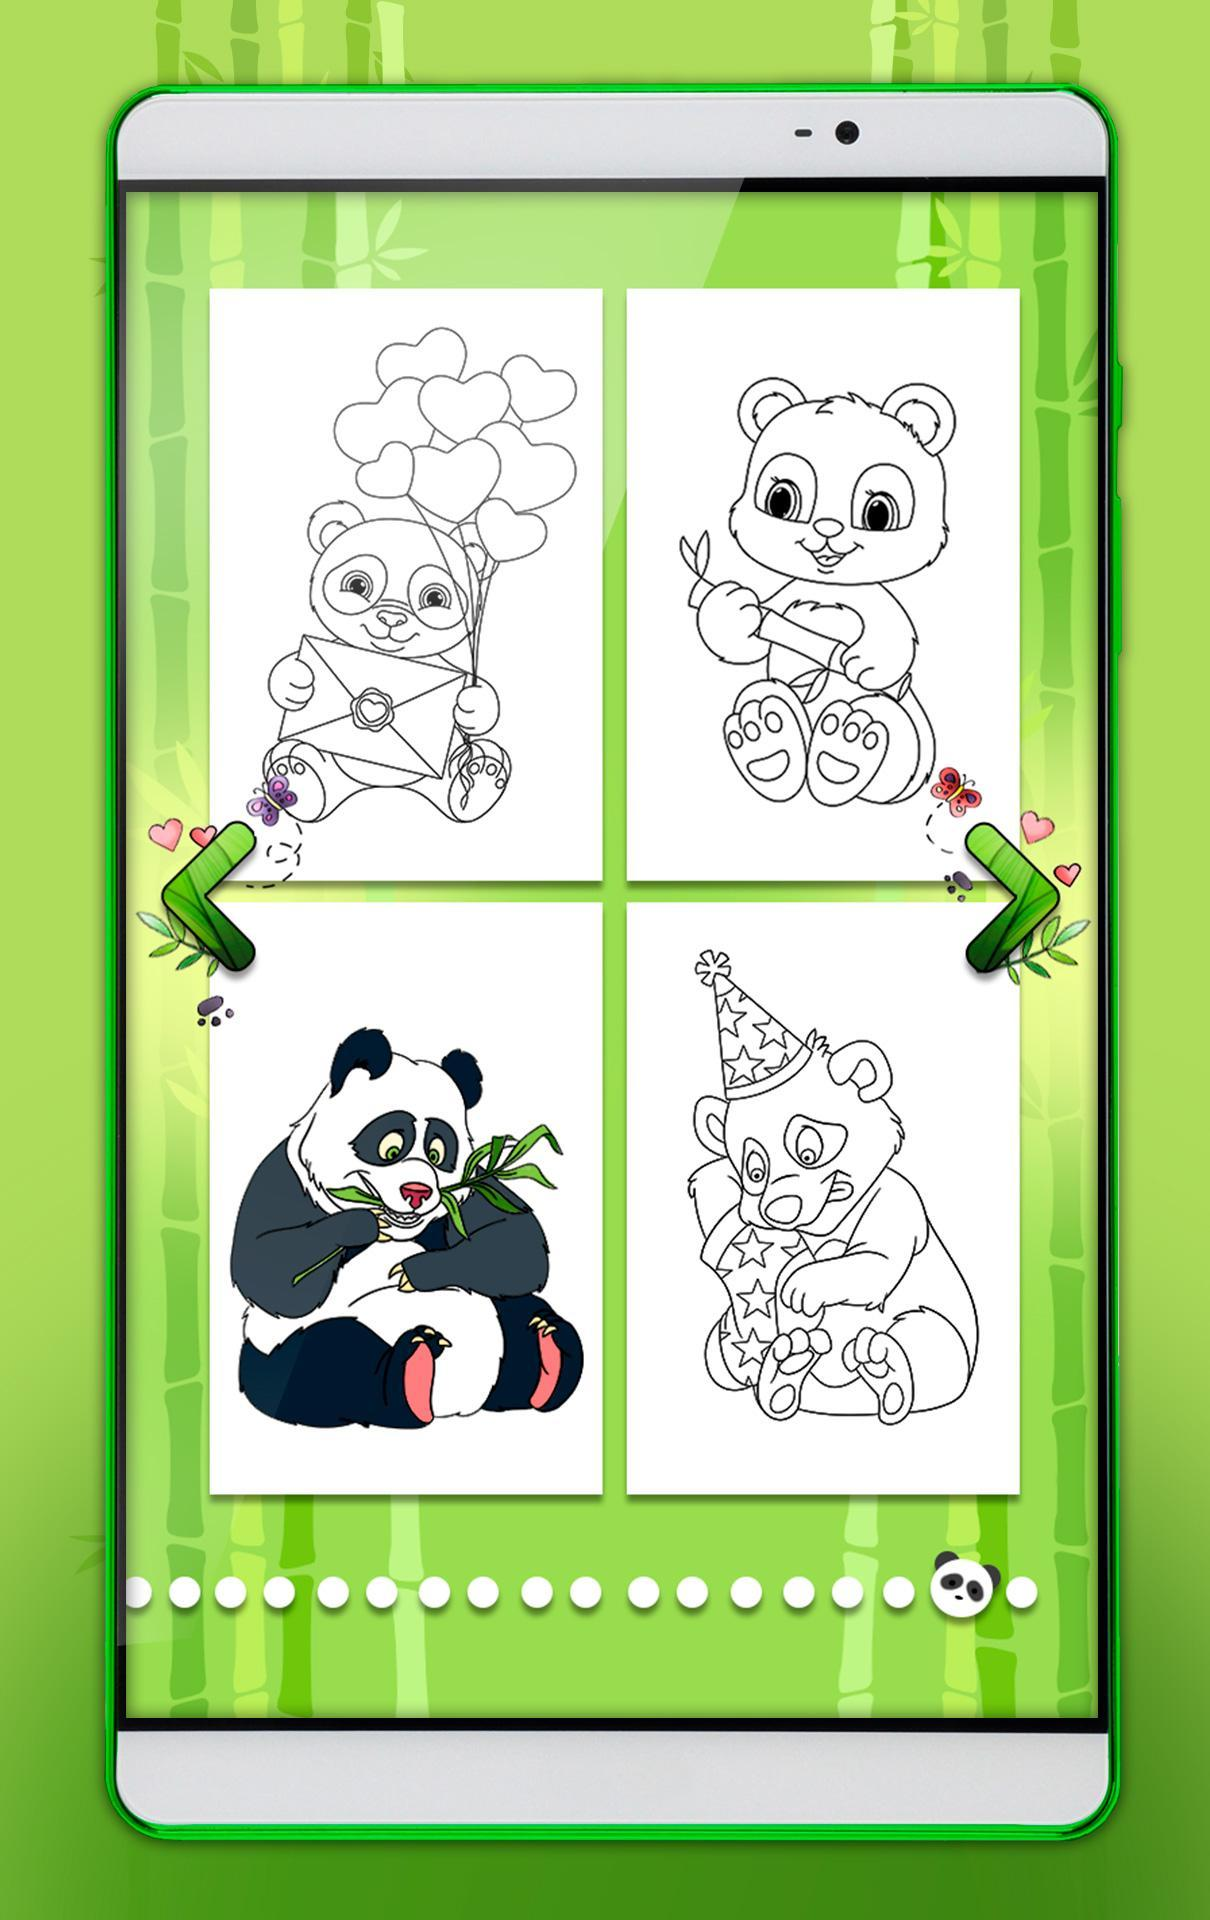 Panda Coloring Pages For Android Apk Download